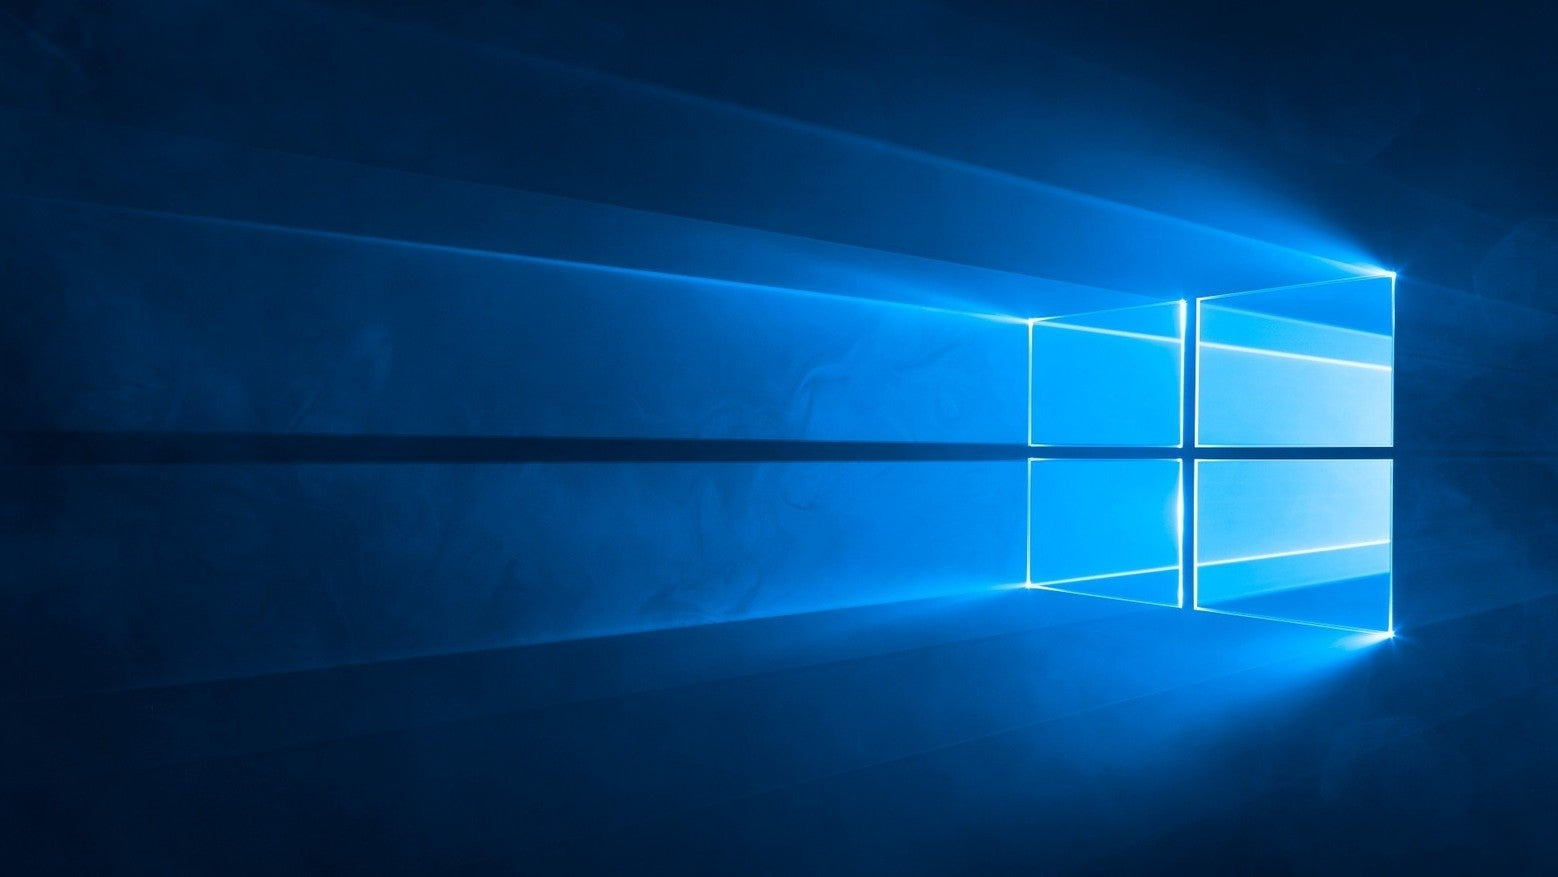 microsoft windows windows-10 windows-update